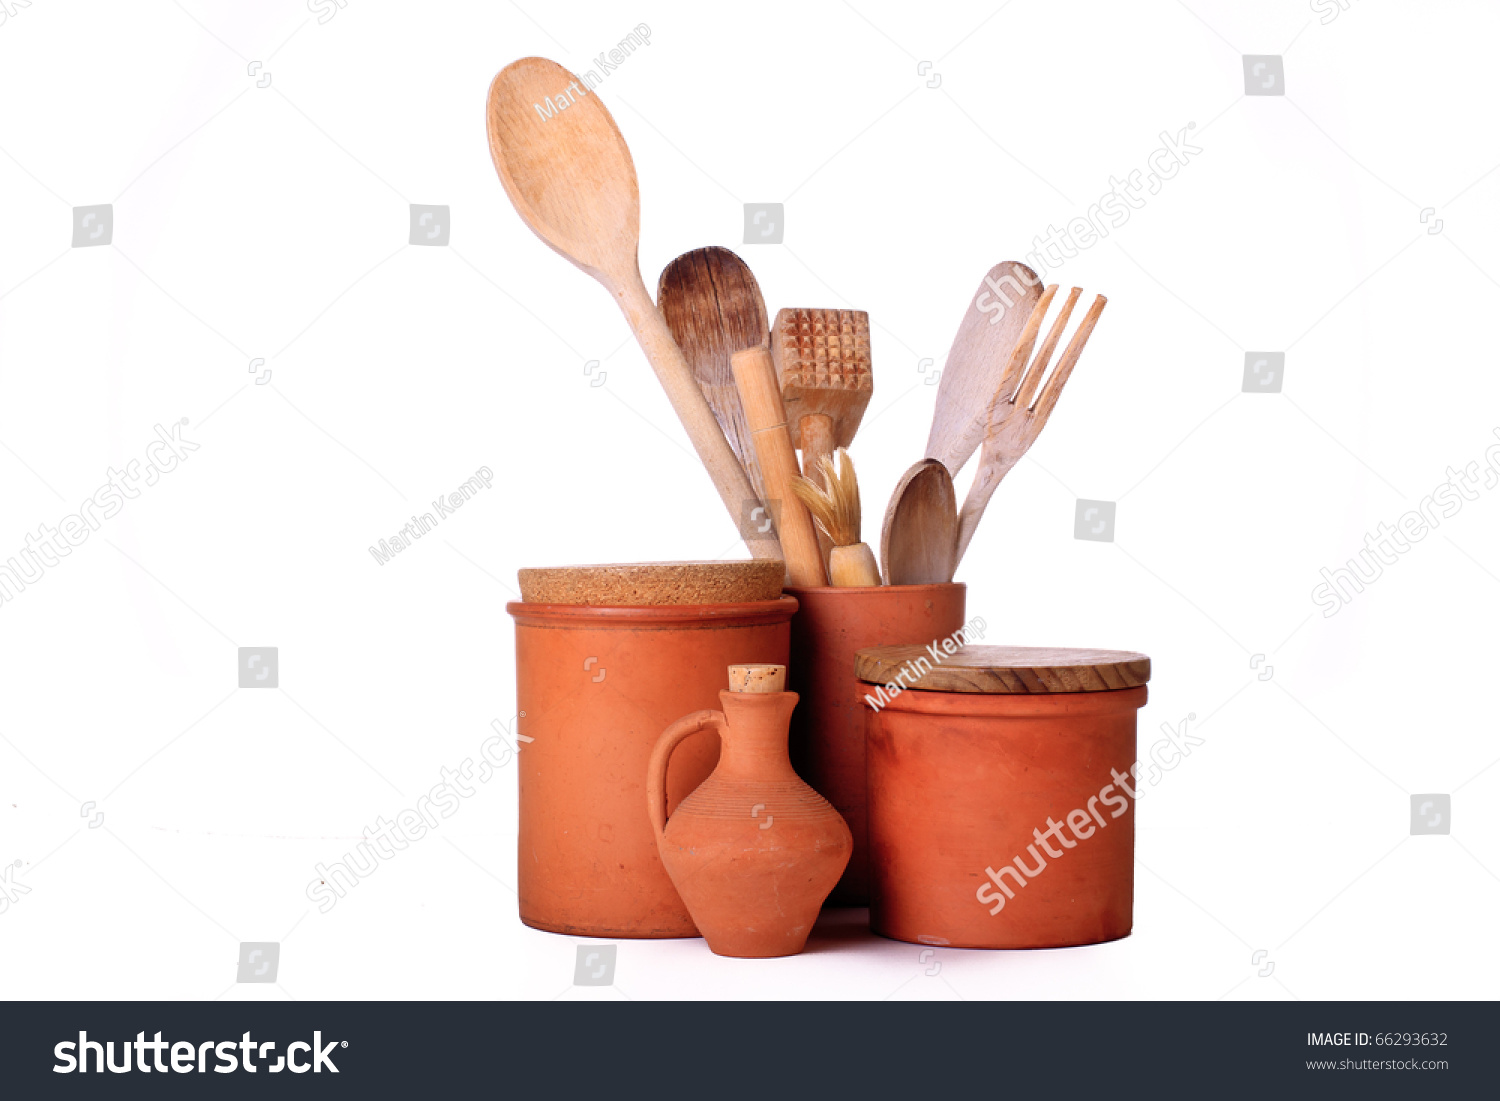 Group Terracotta Kitchen Containers Wooden Utensils Stock Photo ...